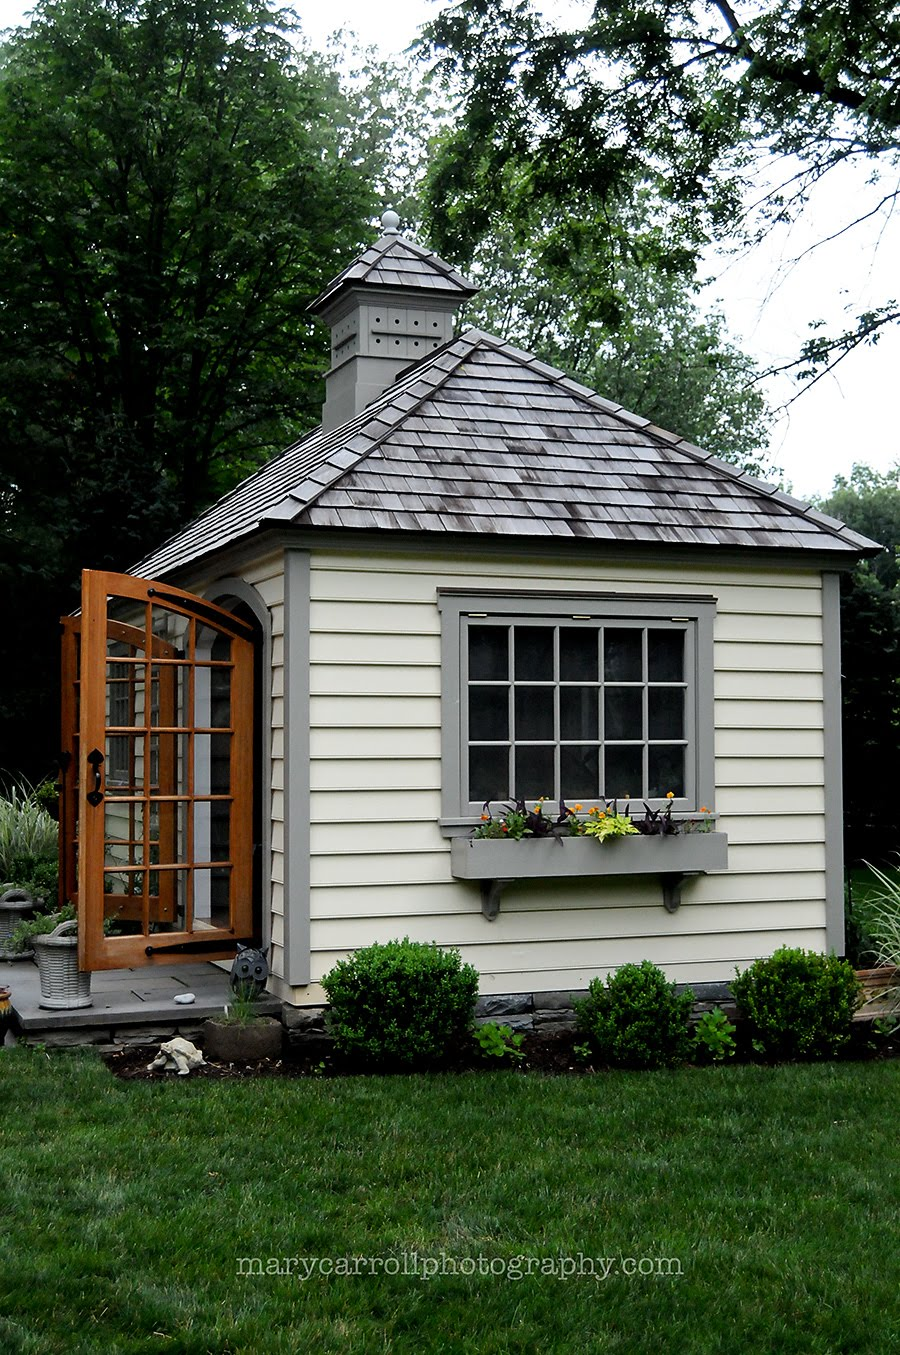 Little red house garden shed for Little house